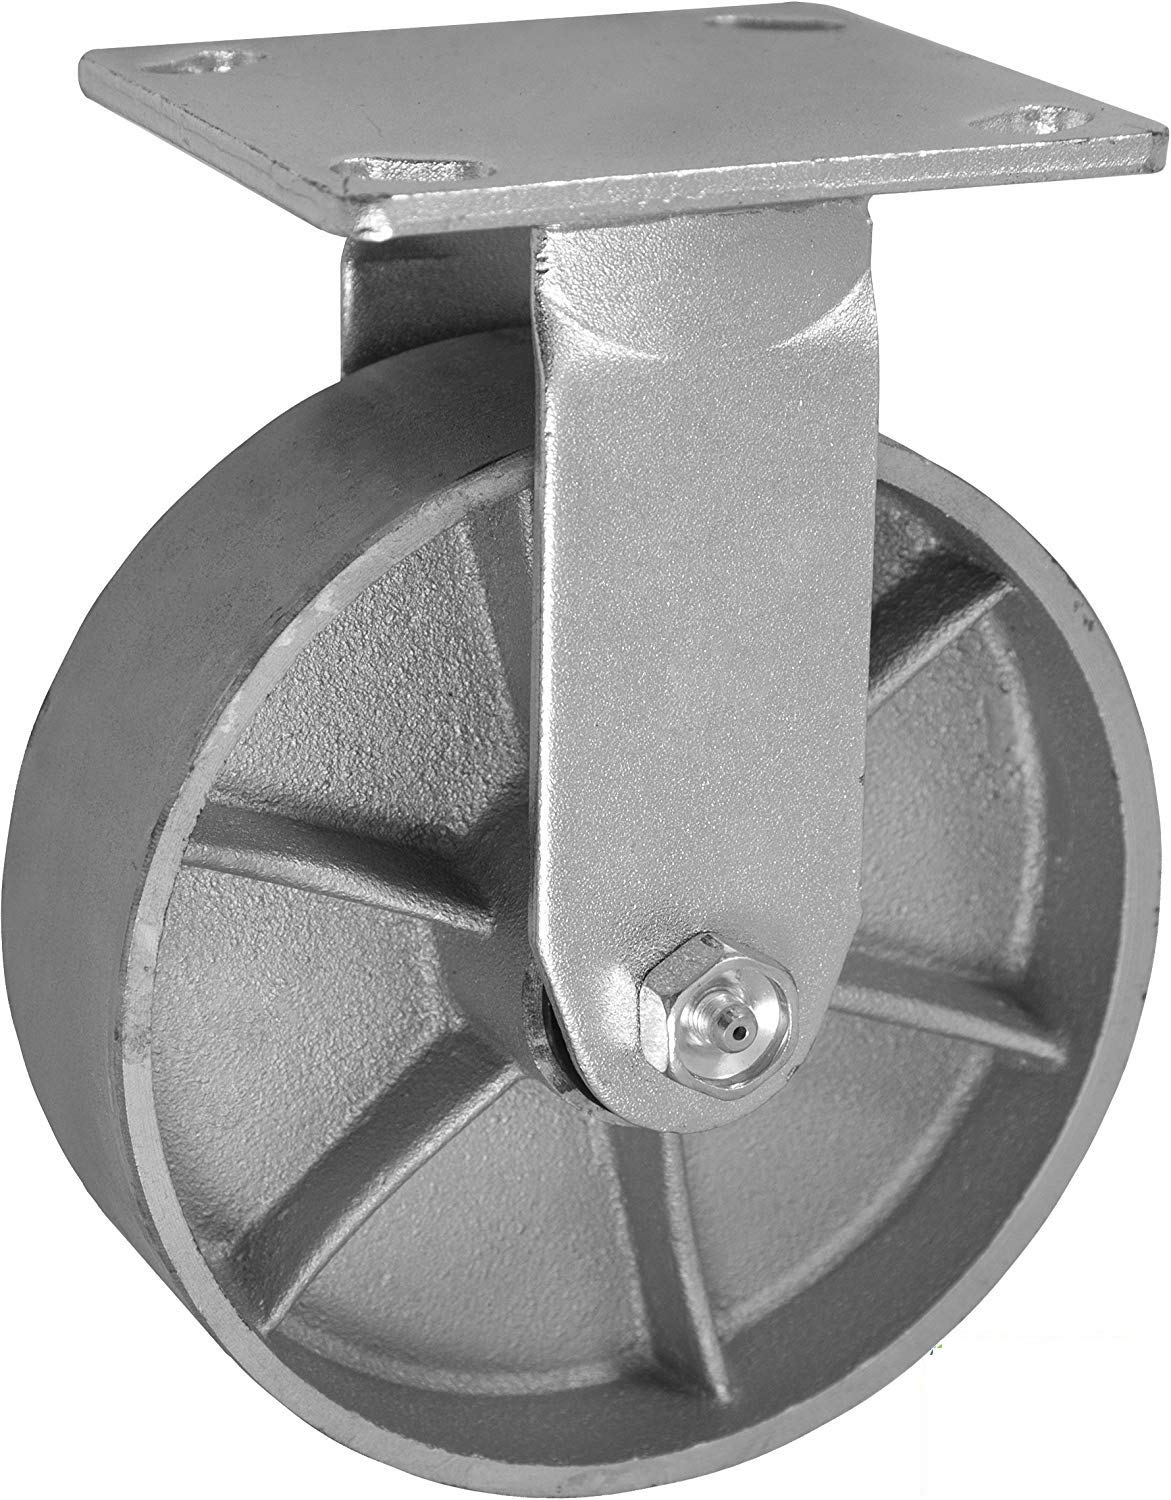 CasterHQ 5'' X 2'' inch Rigid/Fixed Caster - SEMI-Steel CAST Iron Wheel - 1000 lbs Capacity - 5 inch x 2 inch - Heavy Duty Industrial/Commercial 6-1/2'' Overall Height